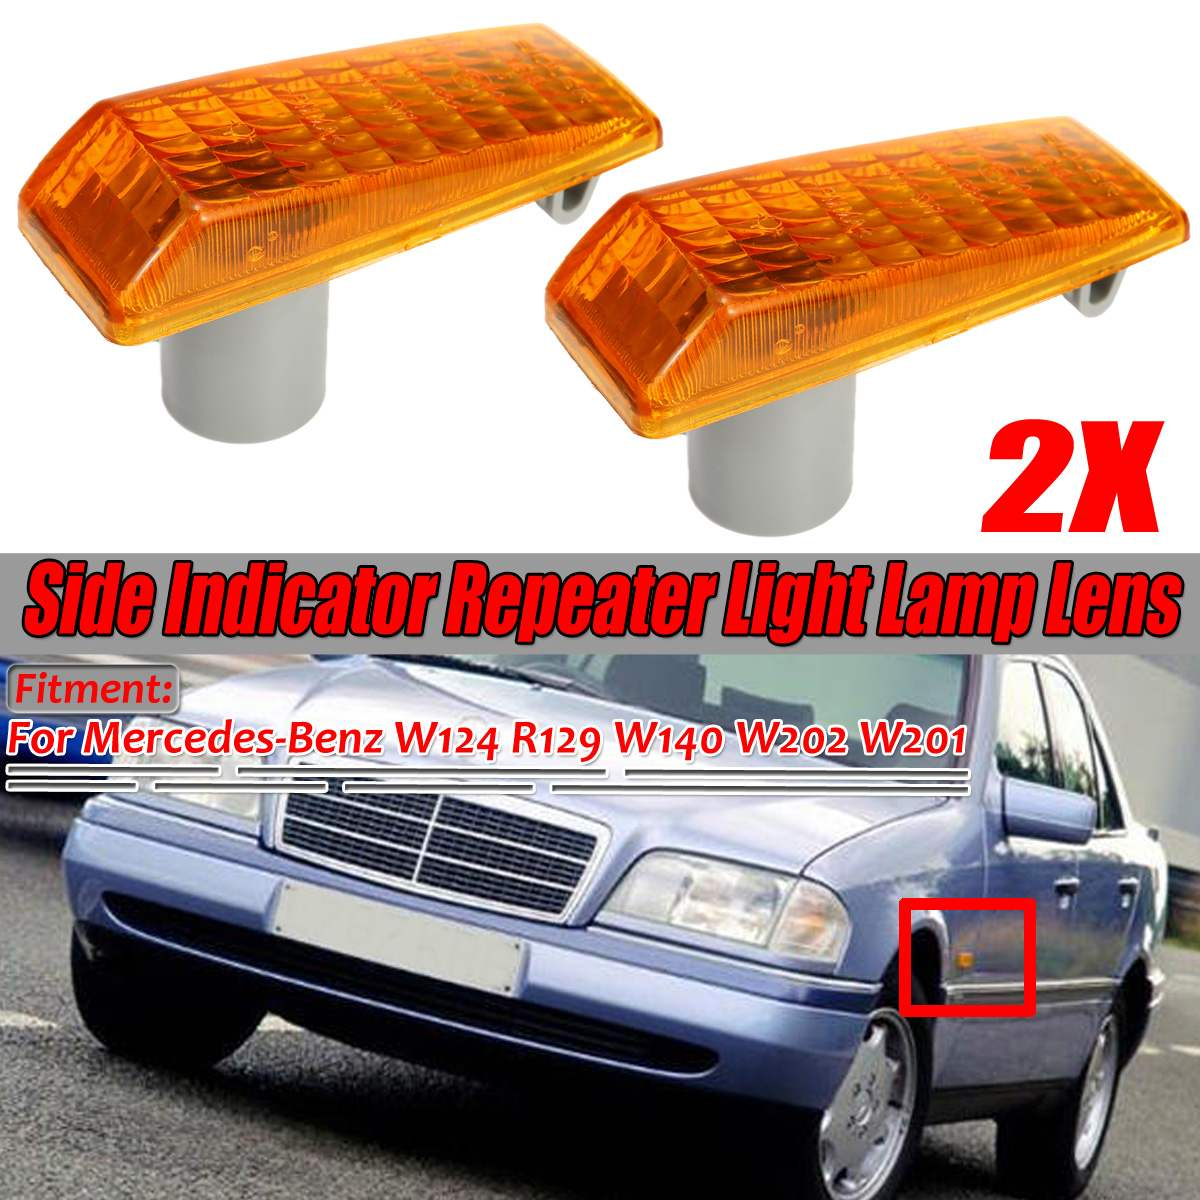 A Pair W124 Car Side Marker Light Indicator Repeater Light Lamp Lens Cover Shell For Mercedes ForBenz W124 R129 W140 W202 W201